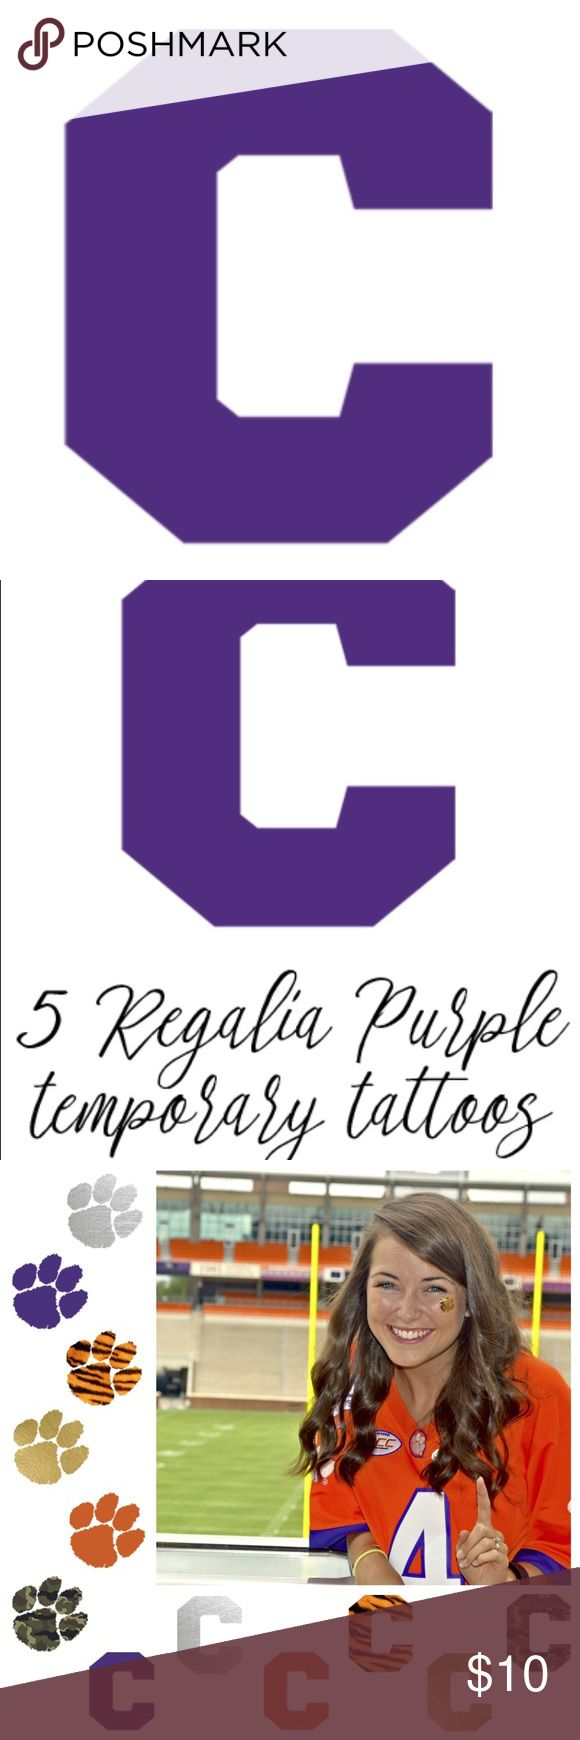 "5 ""C"" Purple temporary tattoos Selling a set of 5 ""C"" Purple temporary tattoos that would be great to wear to Clemson football games! Also selling on my website with free / cheap shipping -> www.magnoliaandscout.com Magnolia & Scout Accessories"